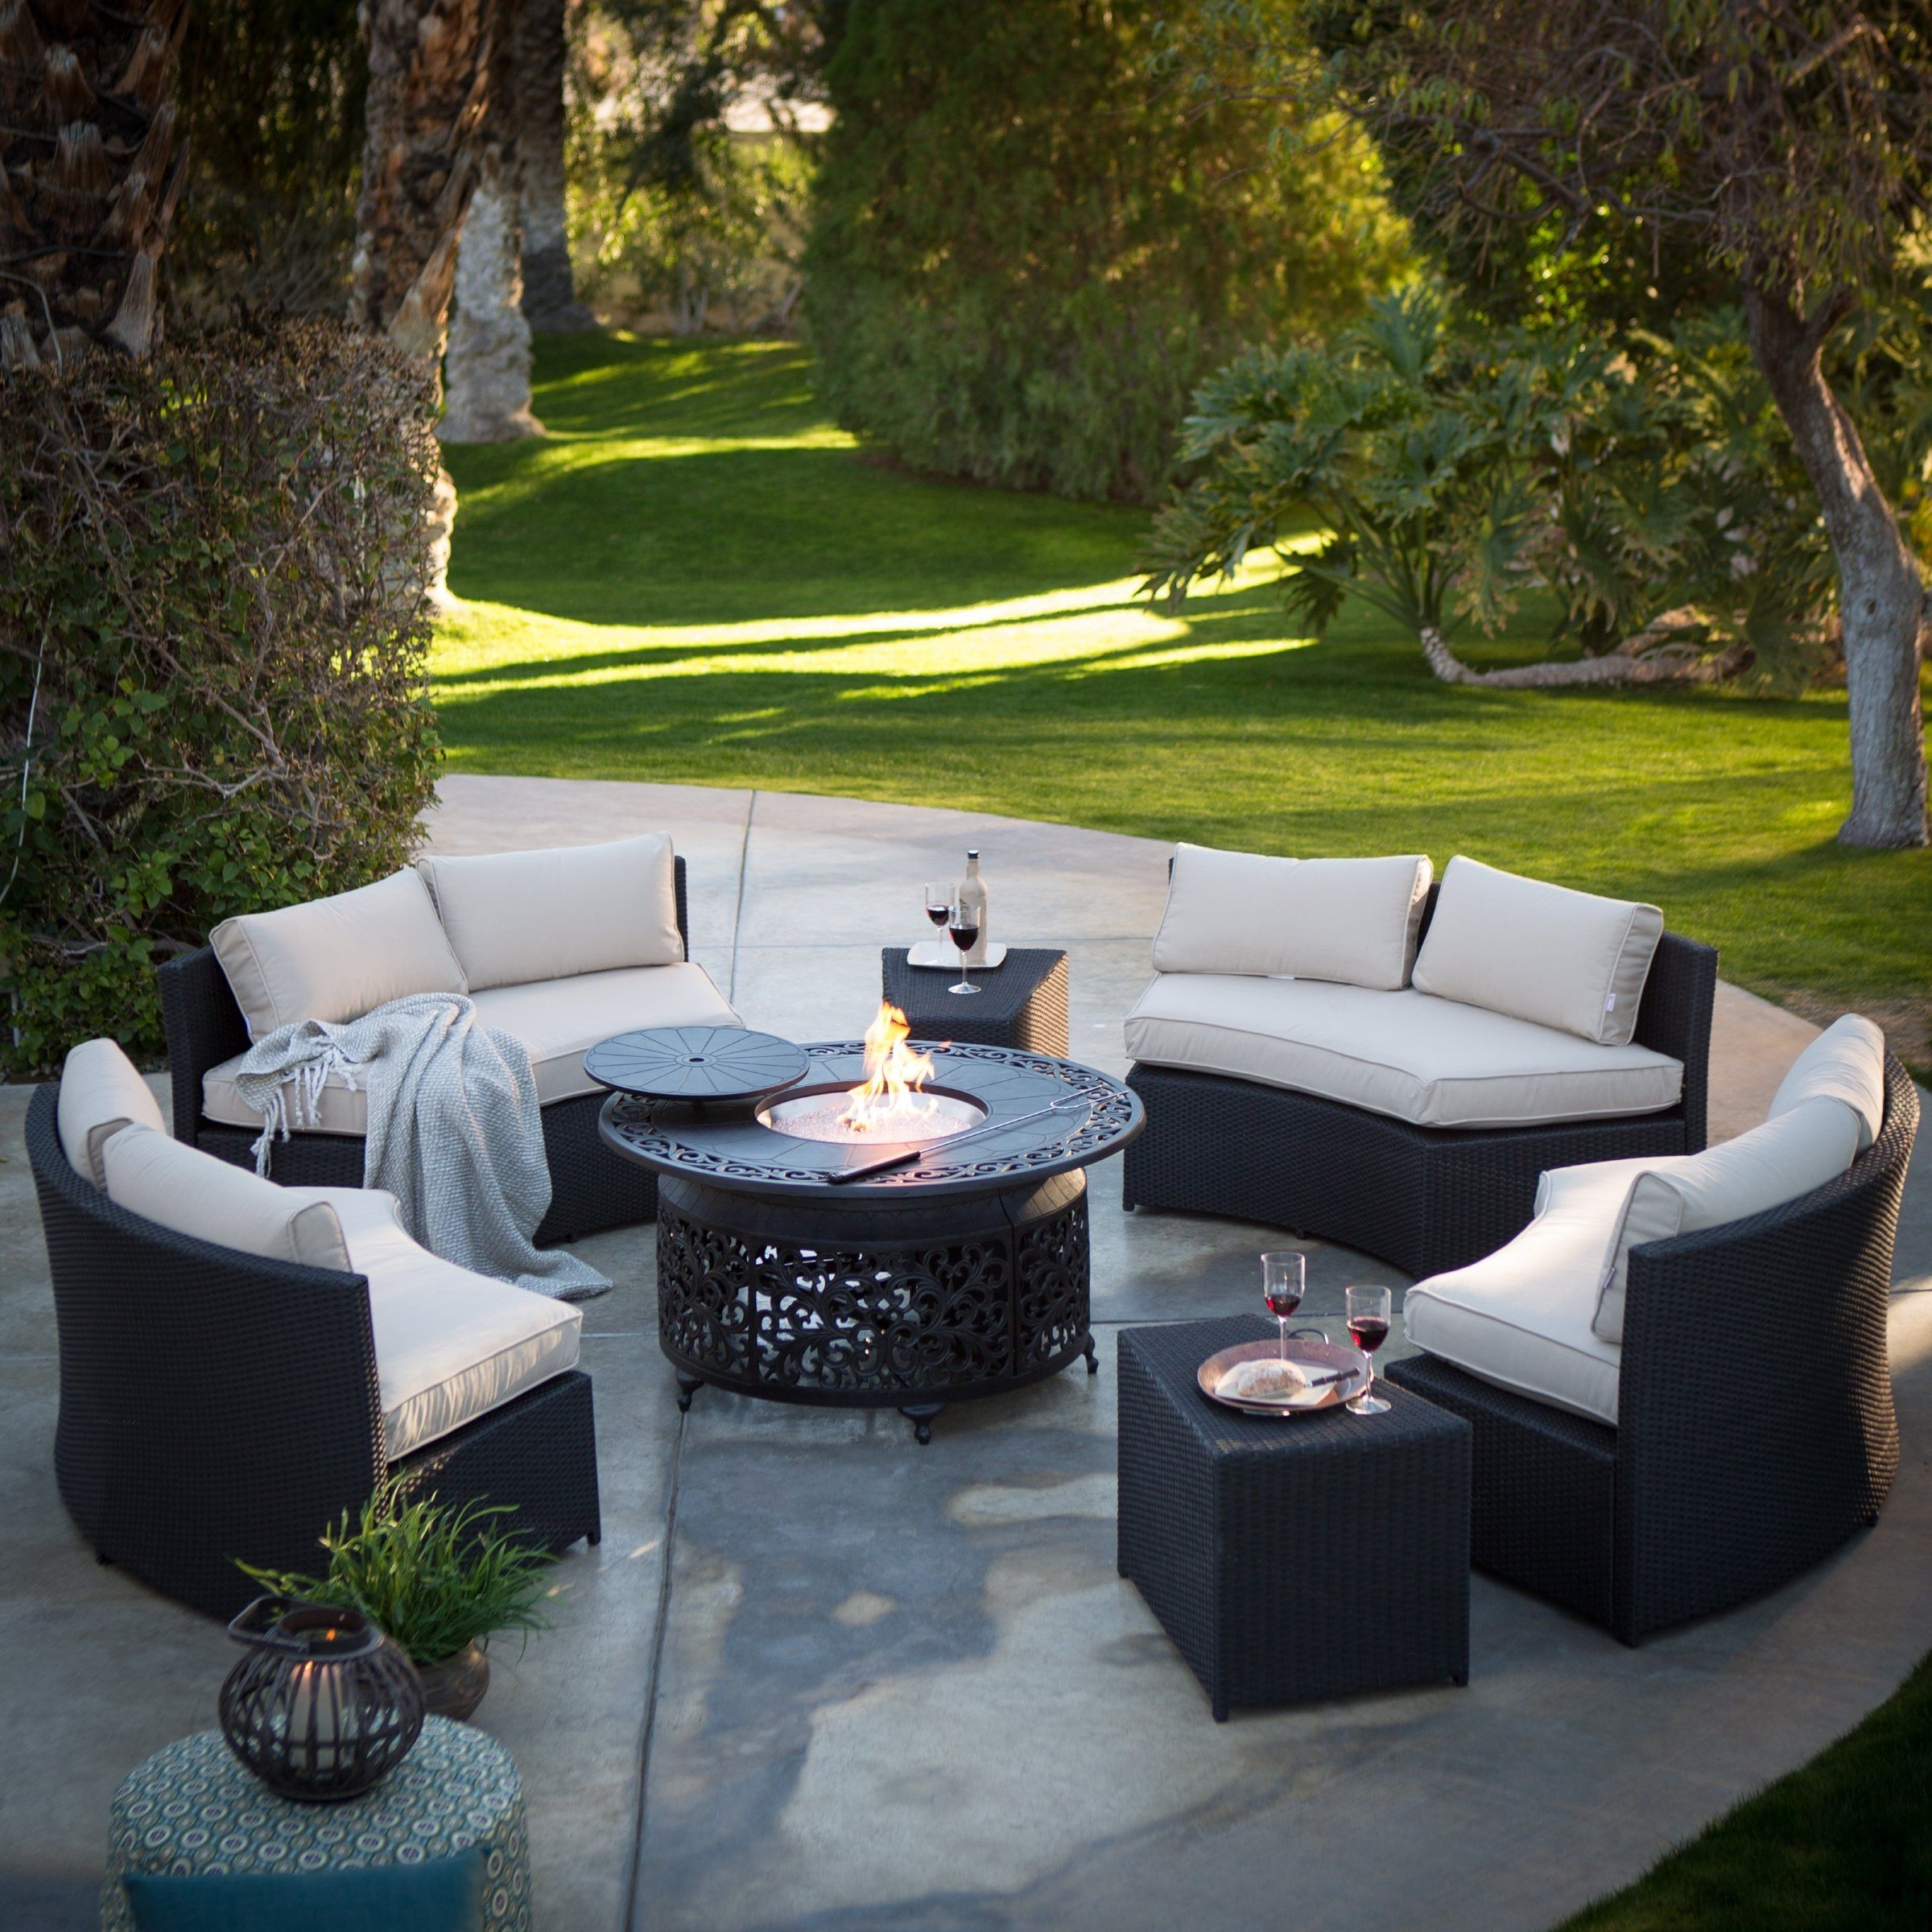 Trendy Radiate Warm Fun With Friends And Family Whenever You Gather! This With Regard To Patio Conversation Sets With Fire Pit Table (View 5 of 15)